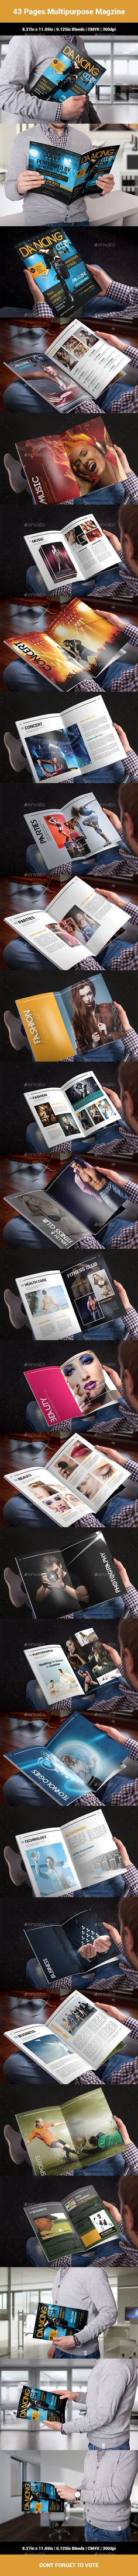 43 Pages Multipurpose Magzine Design Fashion Lookbook